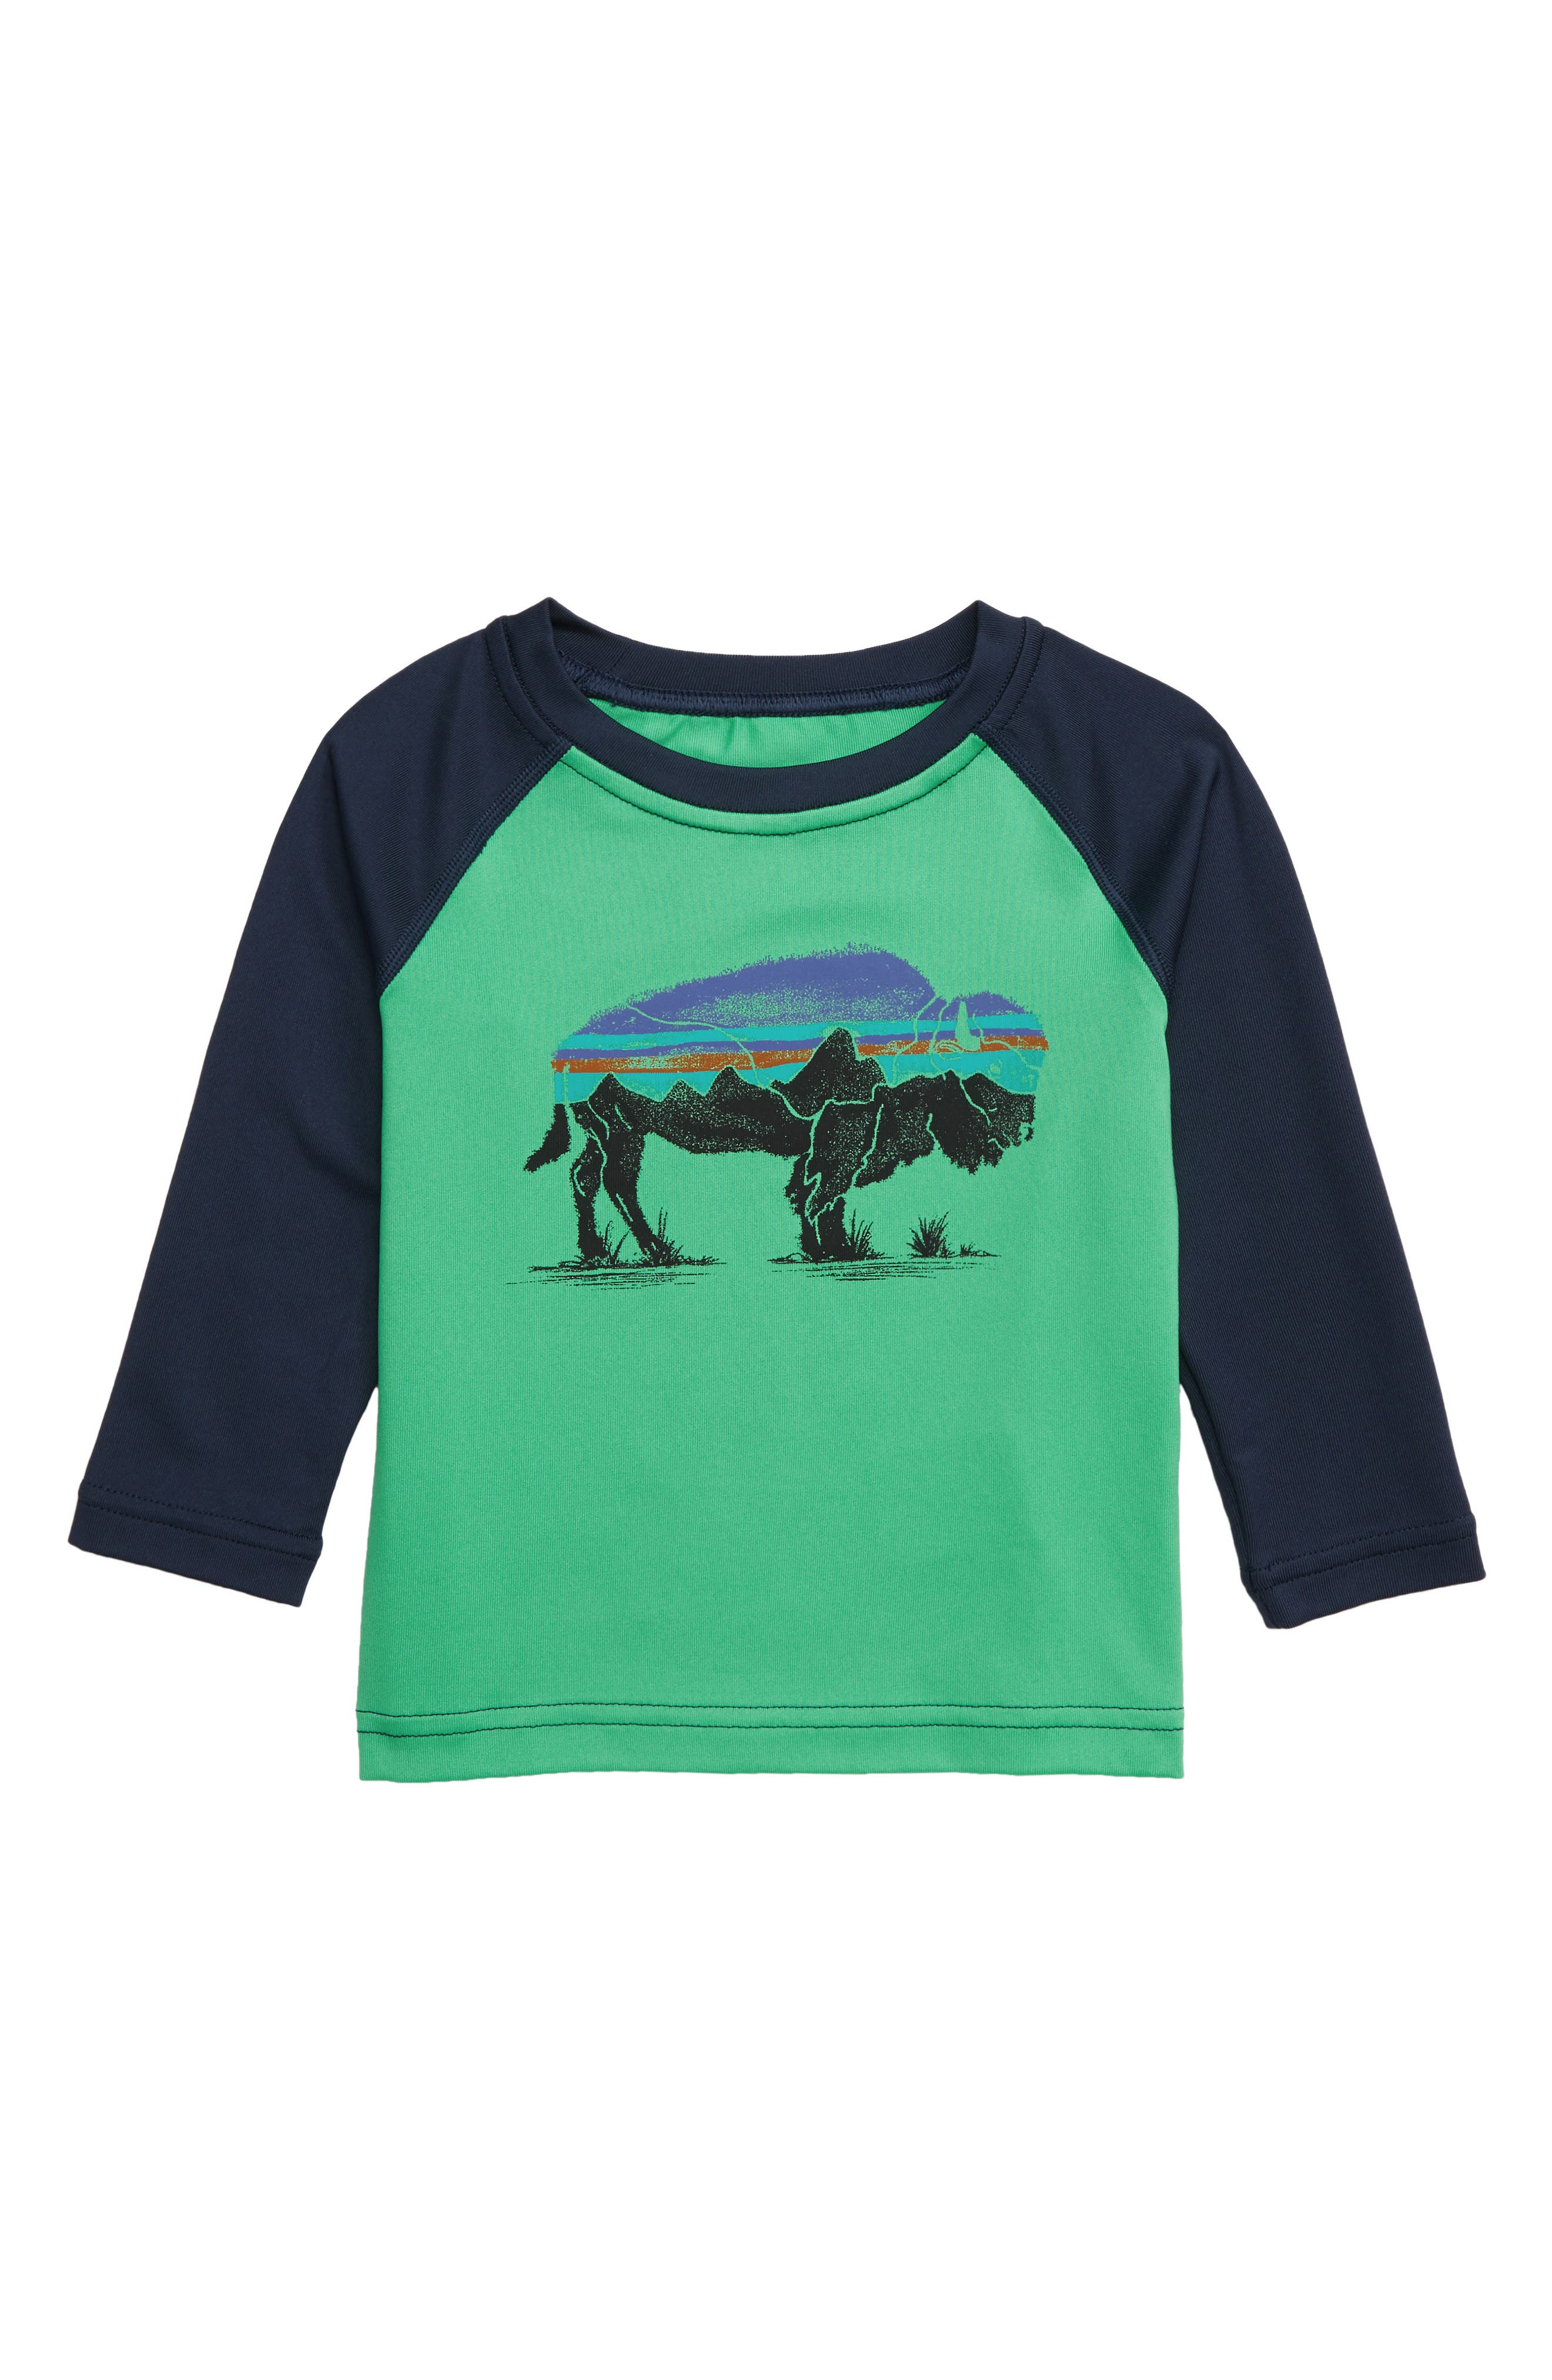 Capilene<sup>®</sup> Rashguard, Main, color, FRNG FITZ ROY BISON NET GREEN